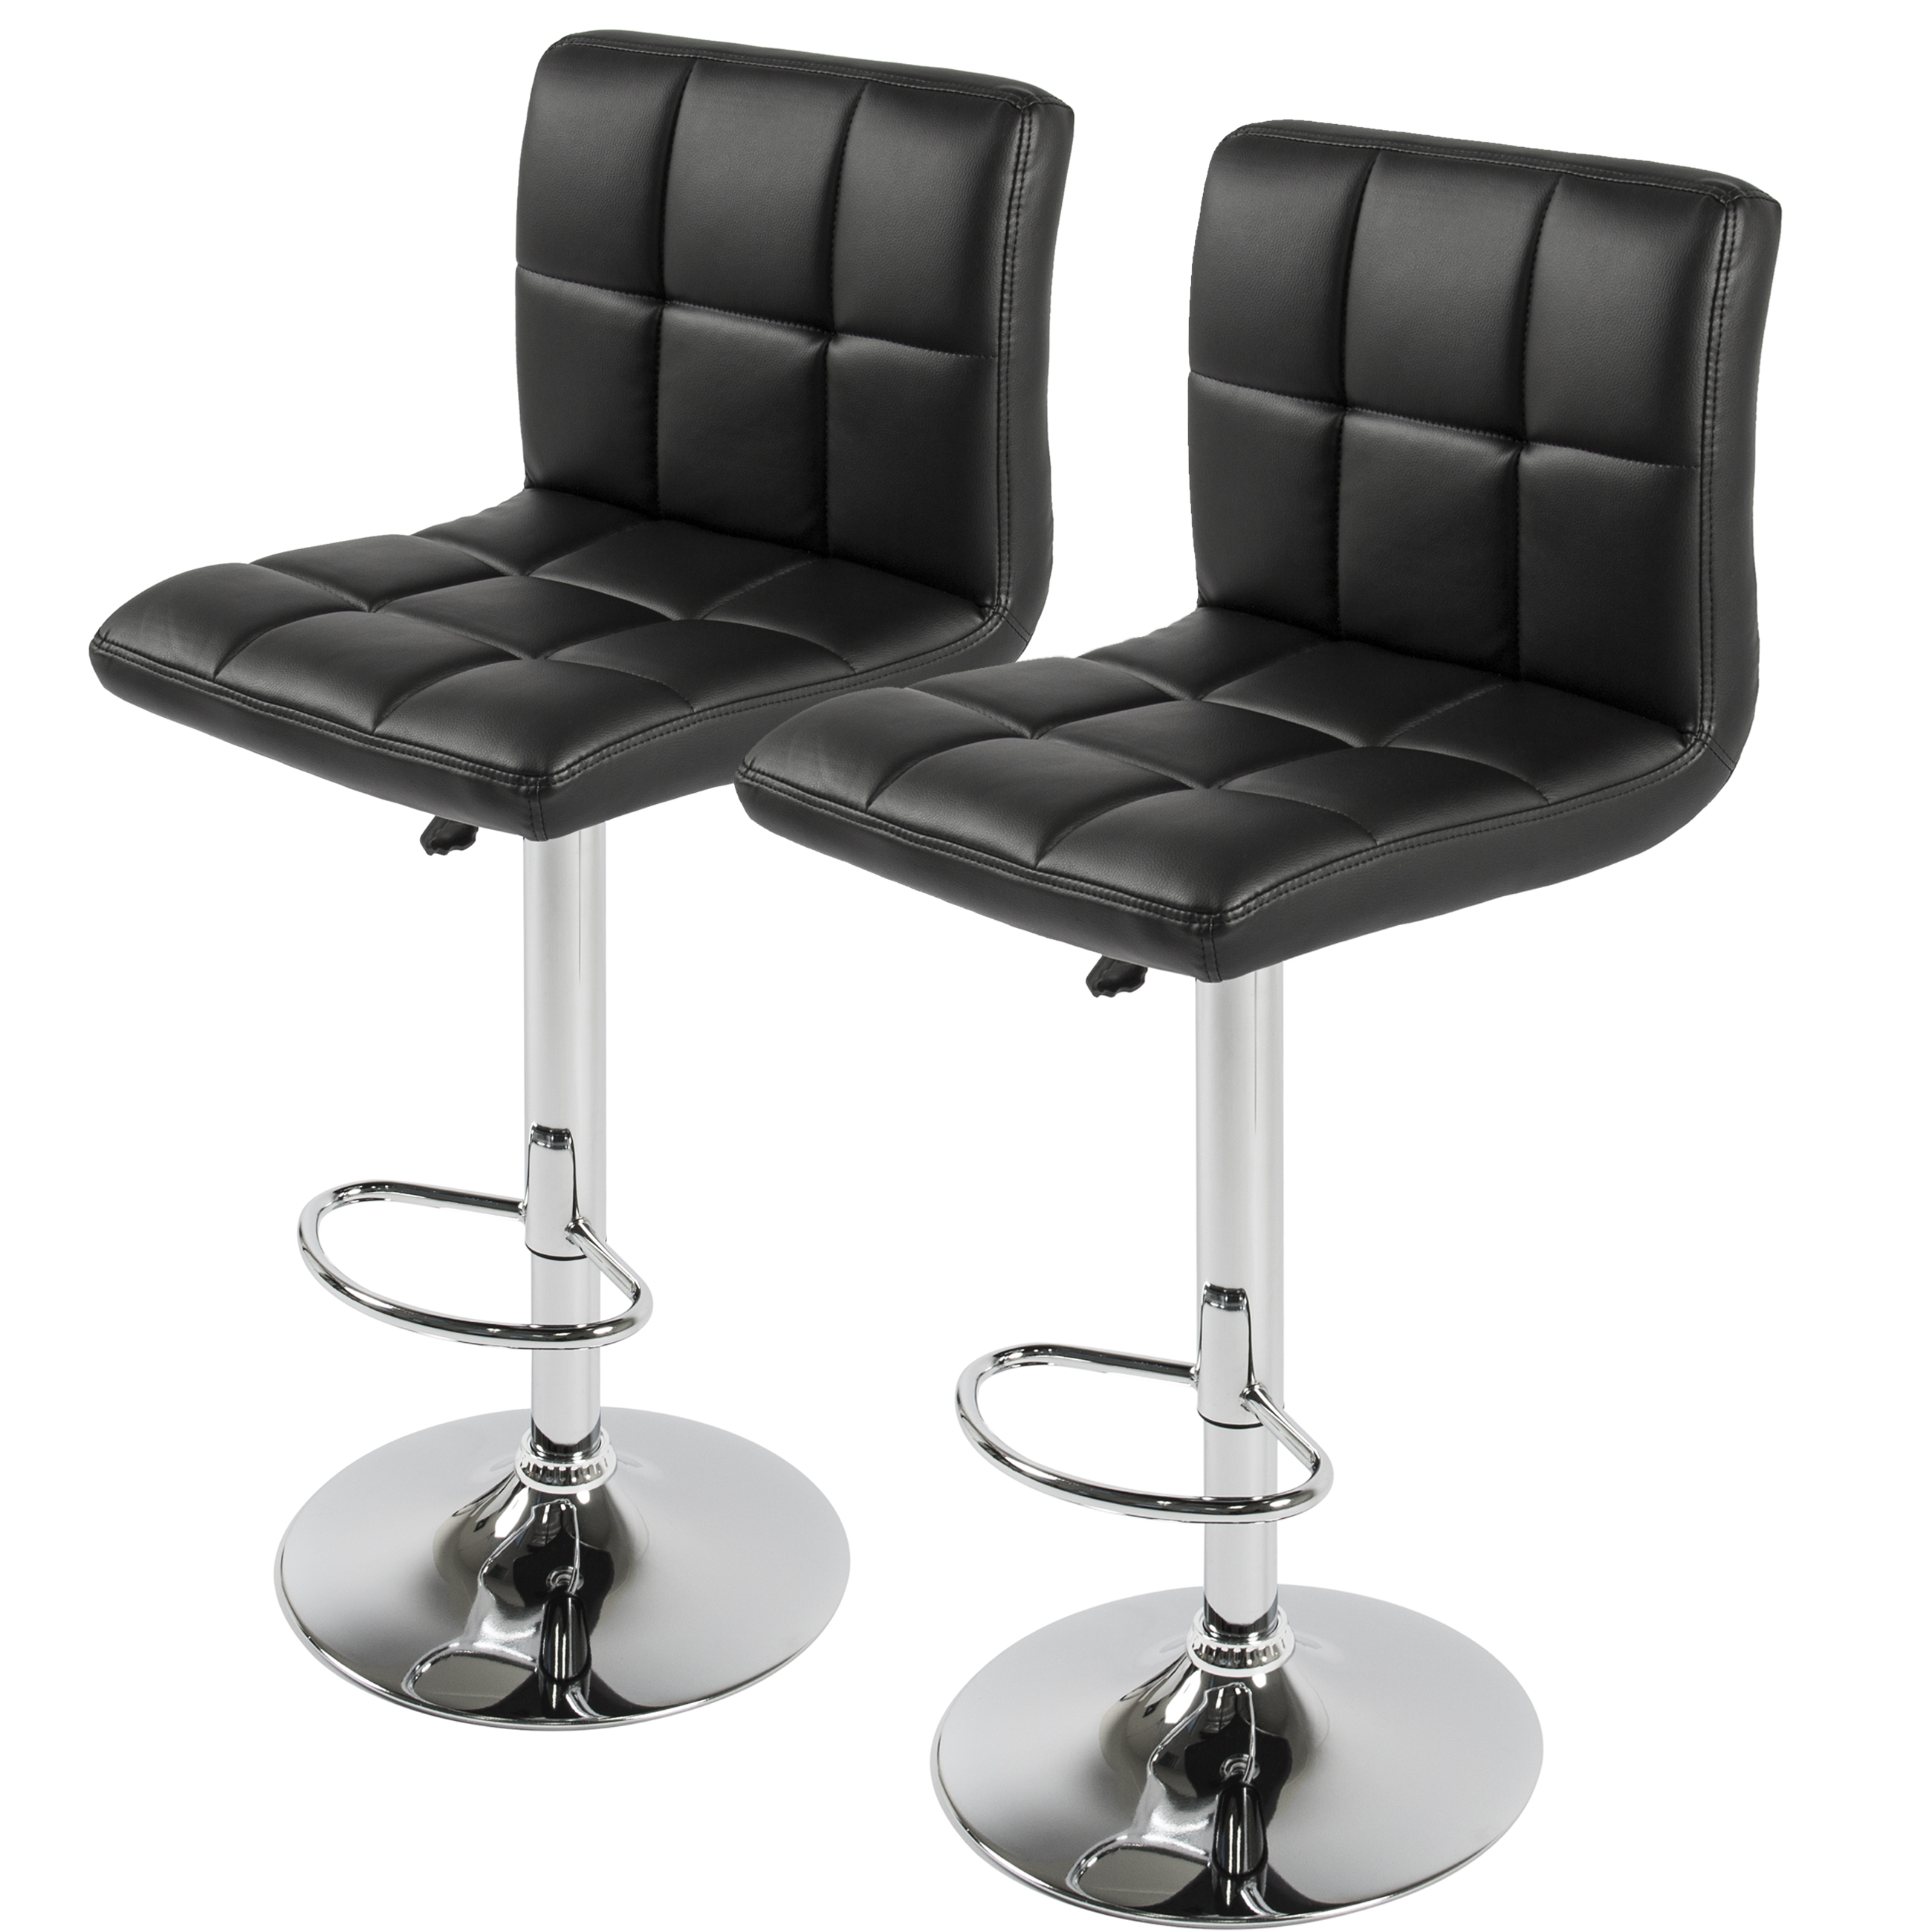 swivel bar stools. BCP Set Of 2 PU Leather Adjustable Bar Stools Counter Swivel Barstool Pub Black